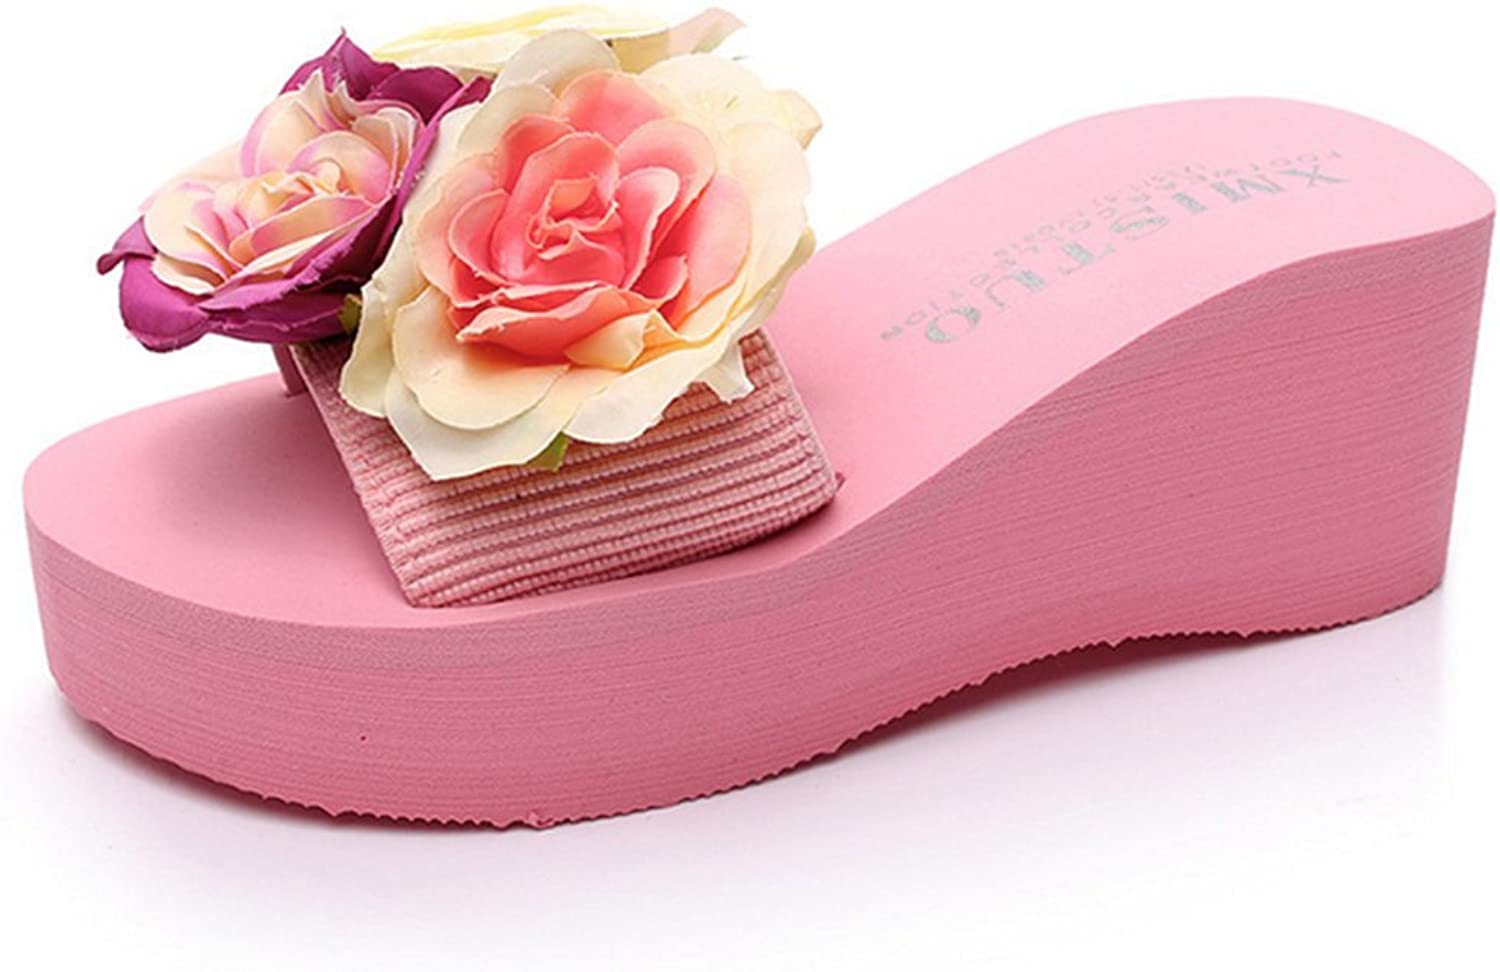 Summer pinks Flower Sandals Wedge Platform shoes High Heels Beach Ladies Thick High Flip Flops,Pink,42